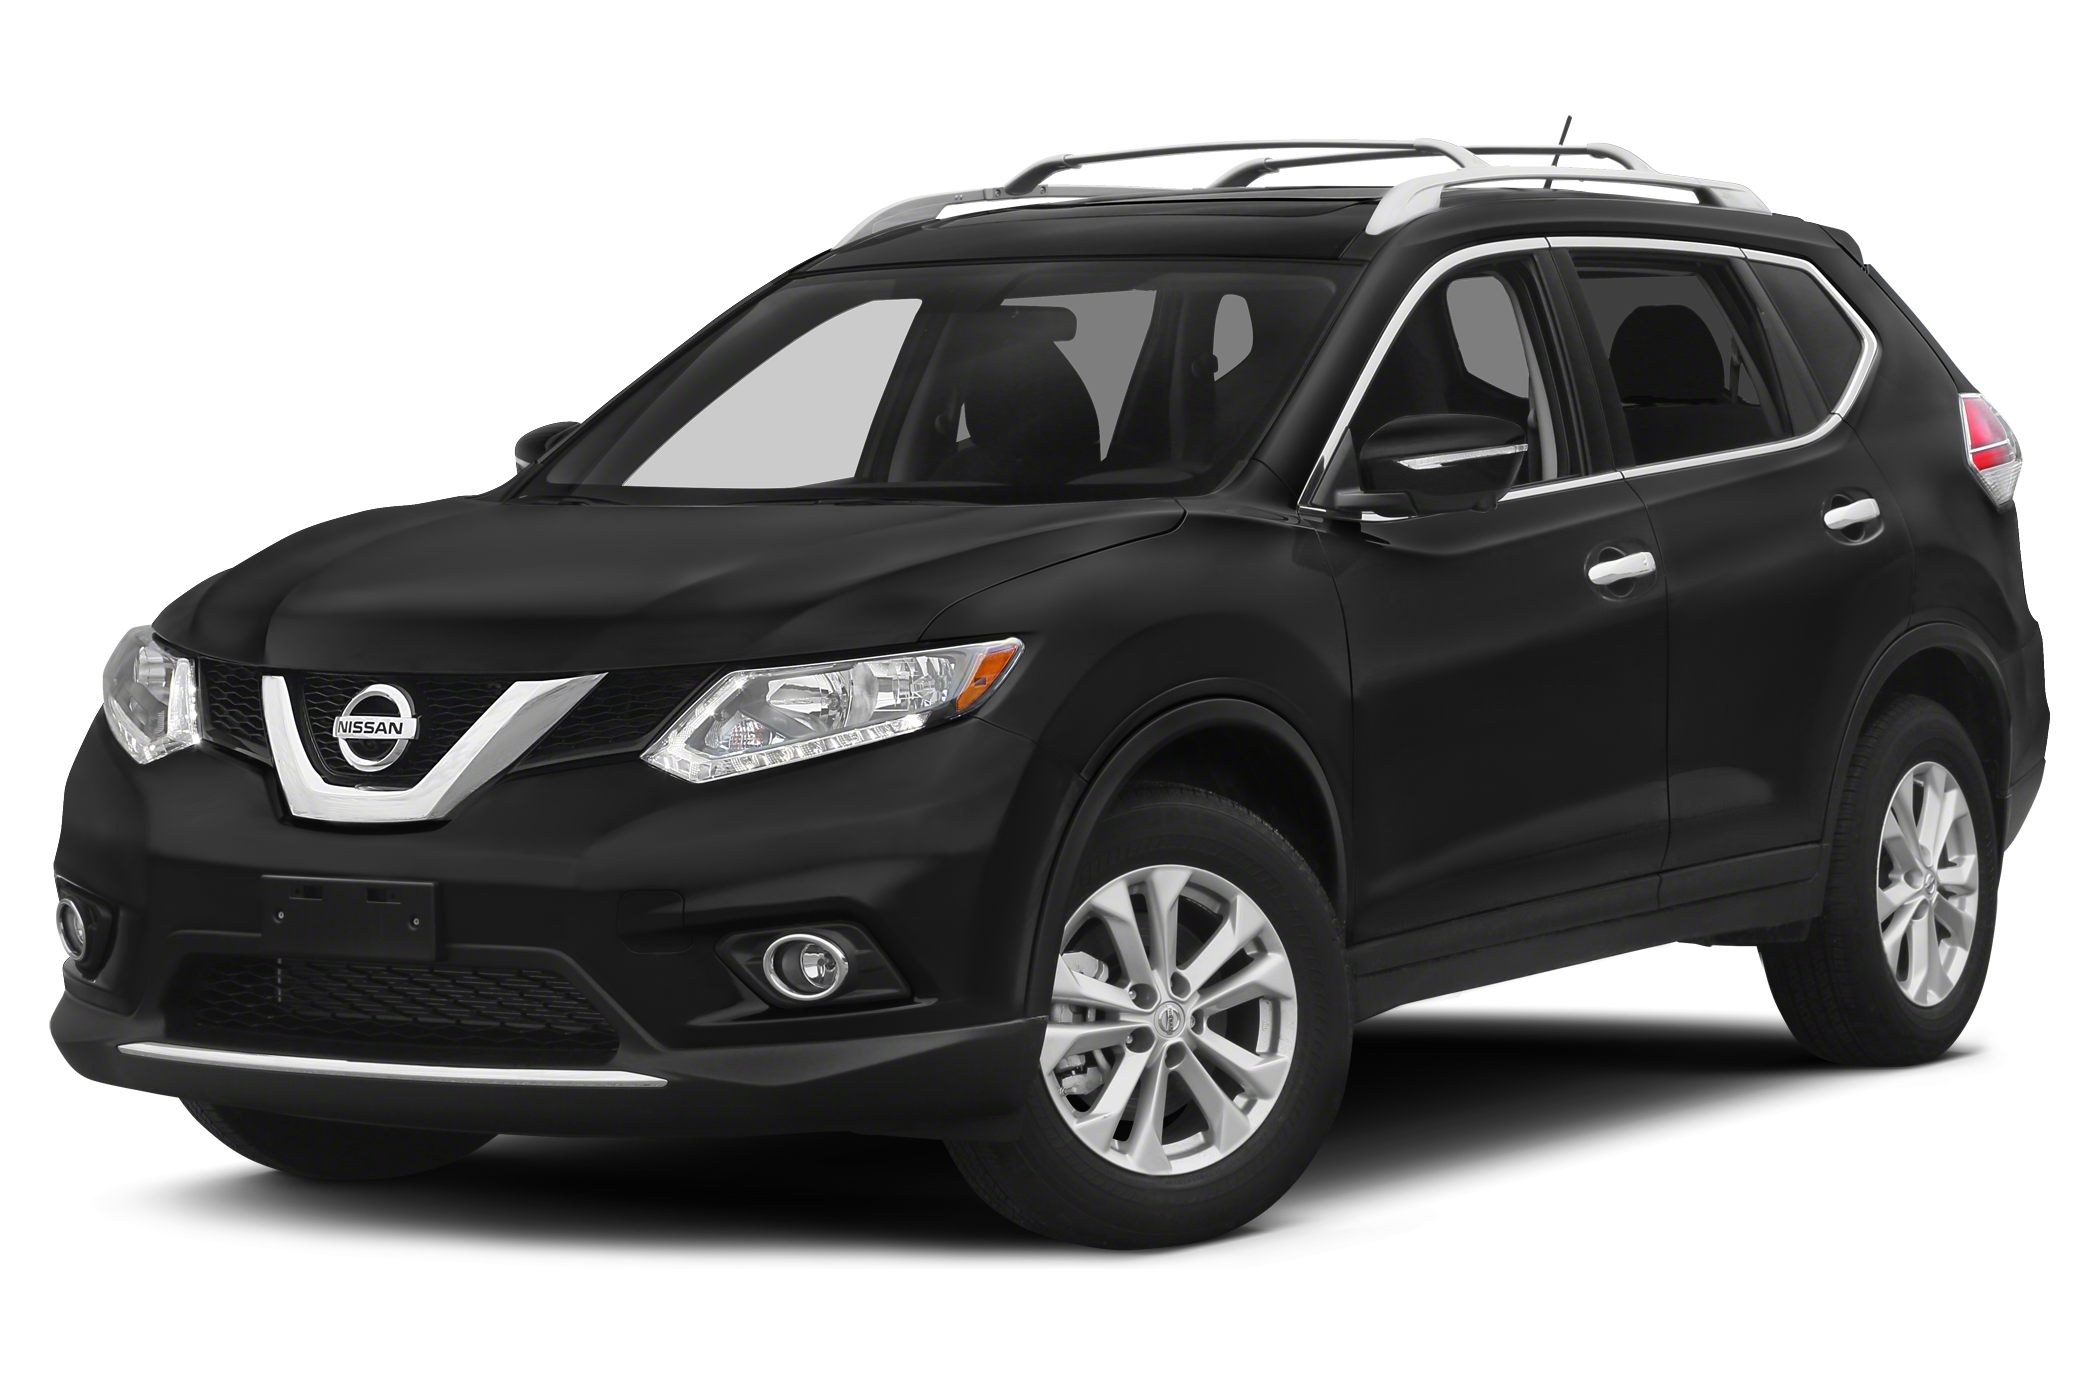 2015 Nissan Rogue SL SUV for sale in Eugene for $31,385 with 4 miles.